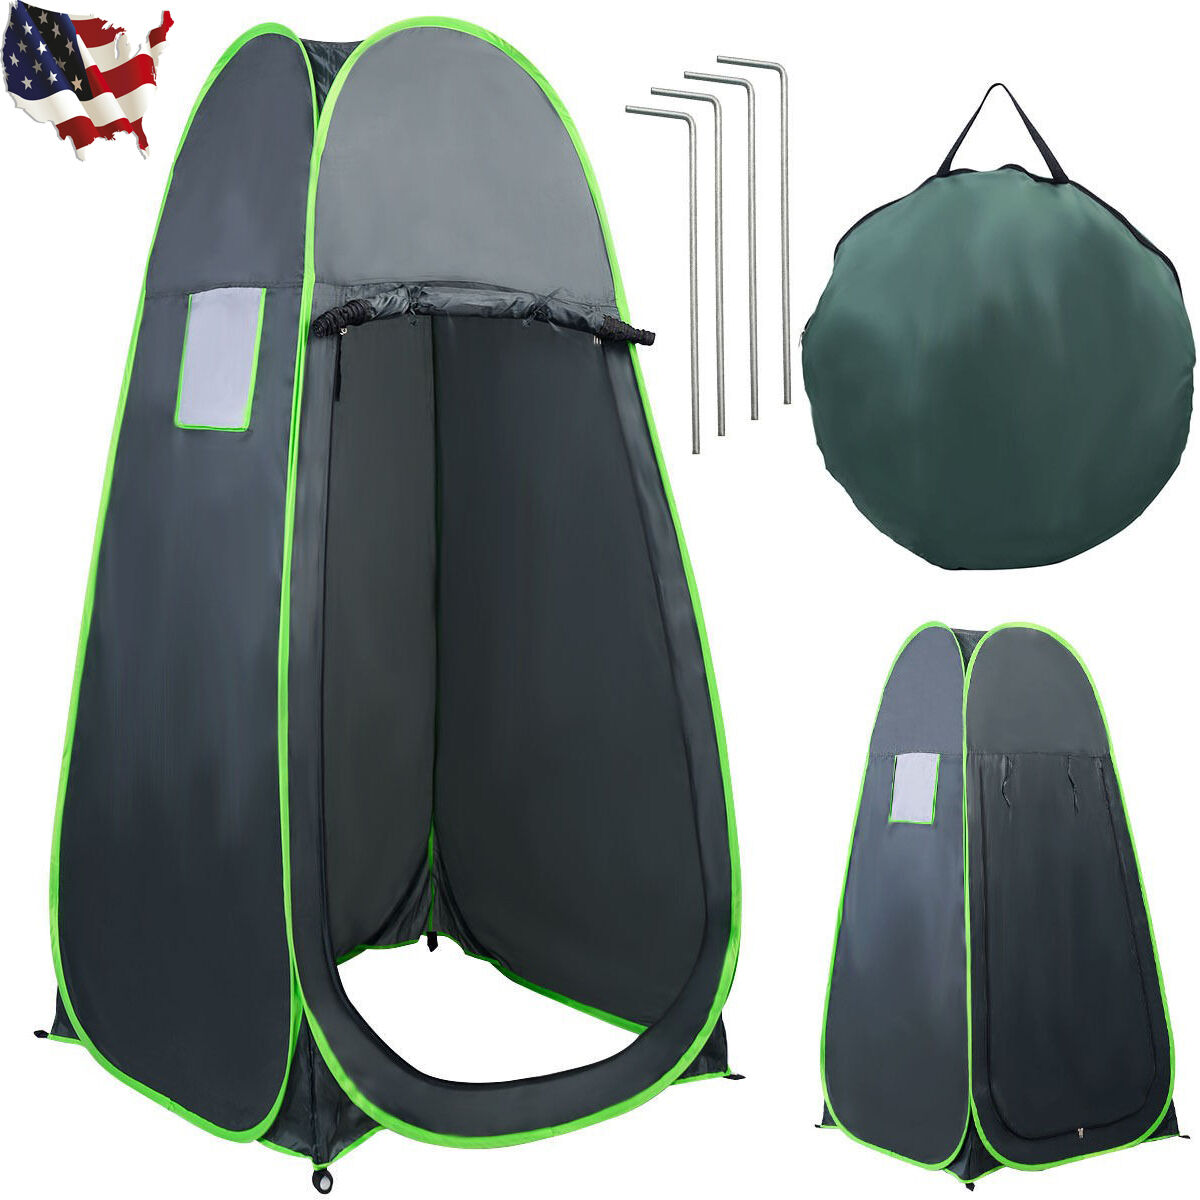 Portable Camping Tent Bathing Toilet Shower Changing Single  Room Enough Space  for your style of play at the cheapest prices